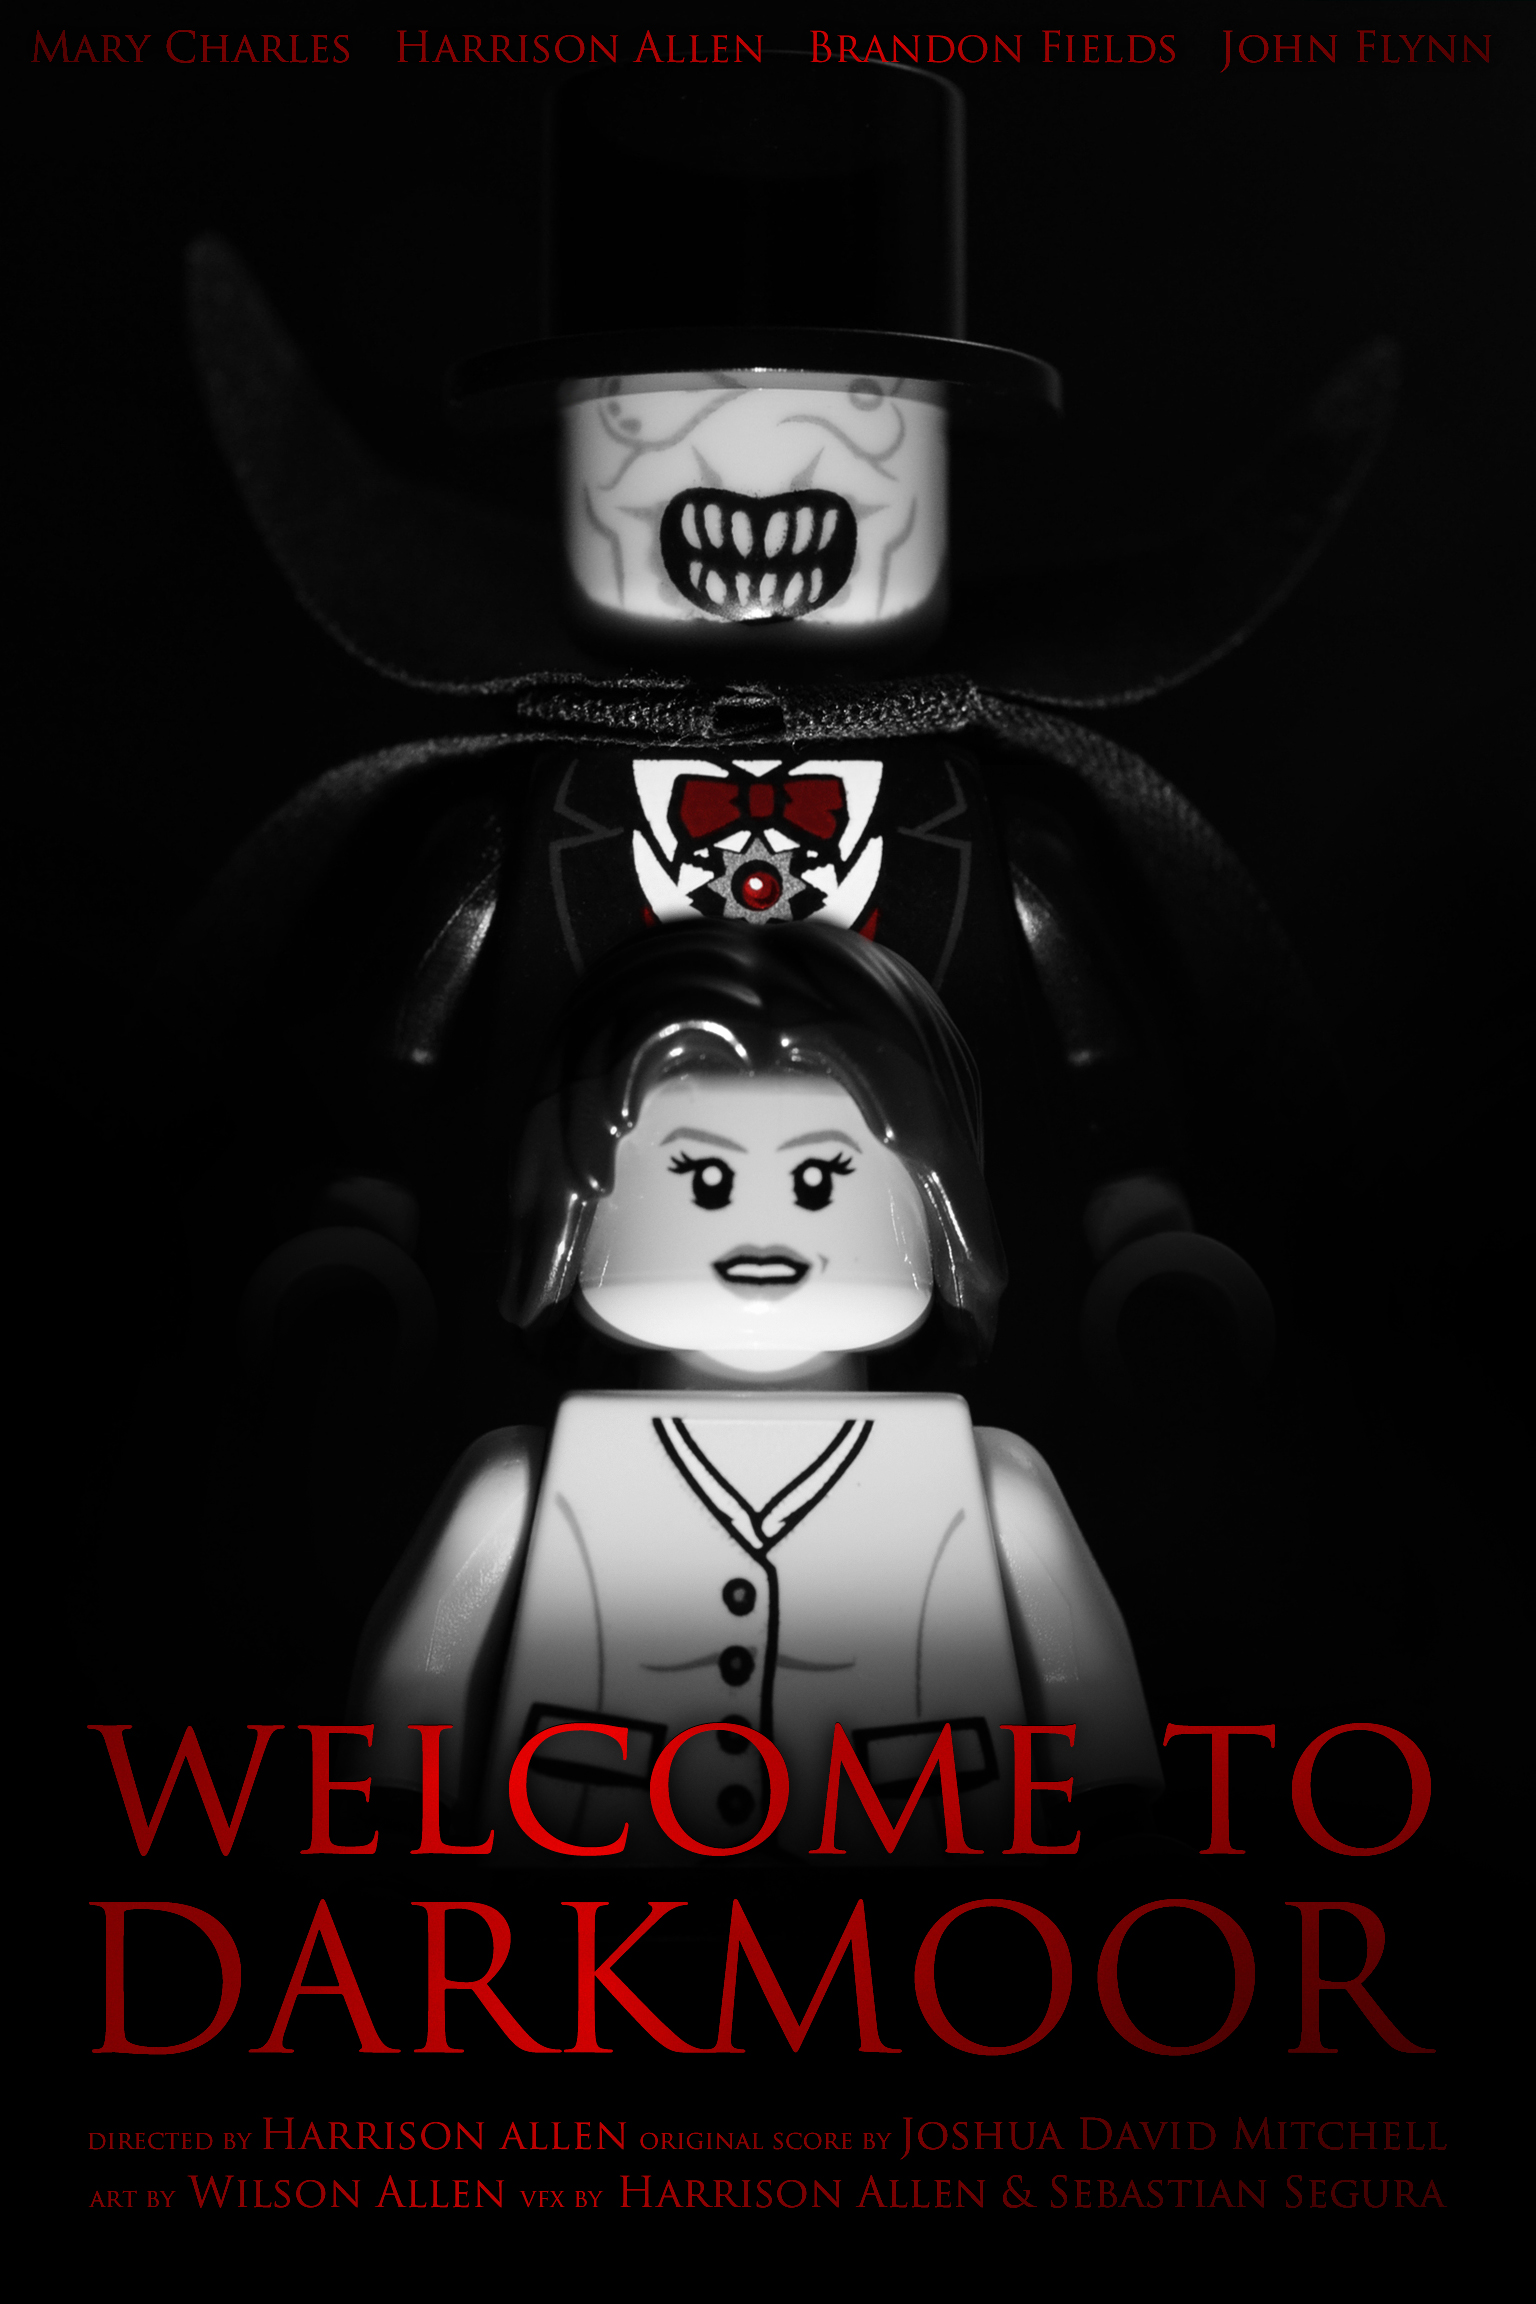 https://bricksafe.com/files/LegoSkeleton2000/guess-the-frame/Poster_3.jpg